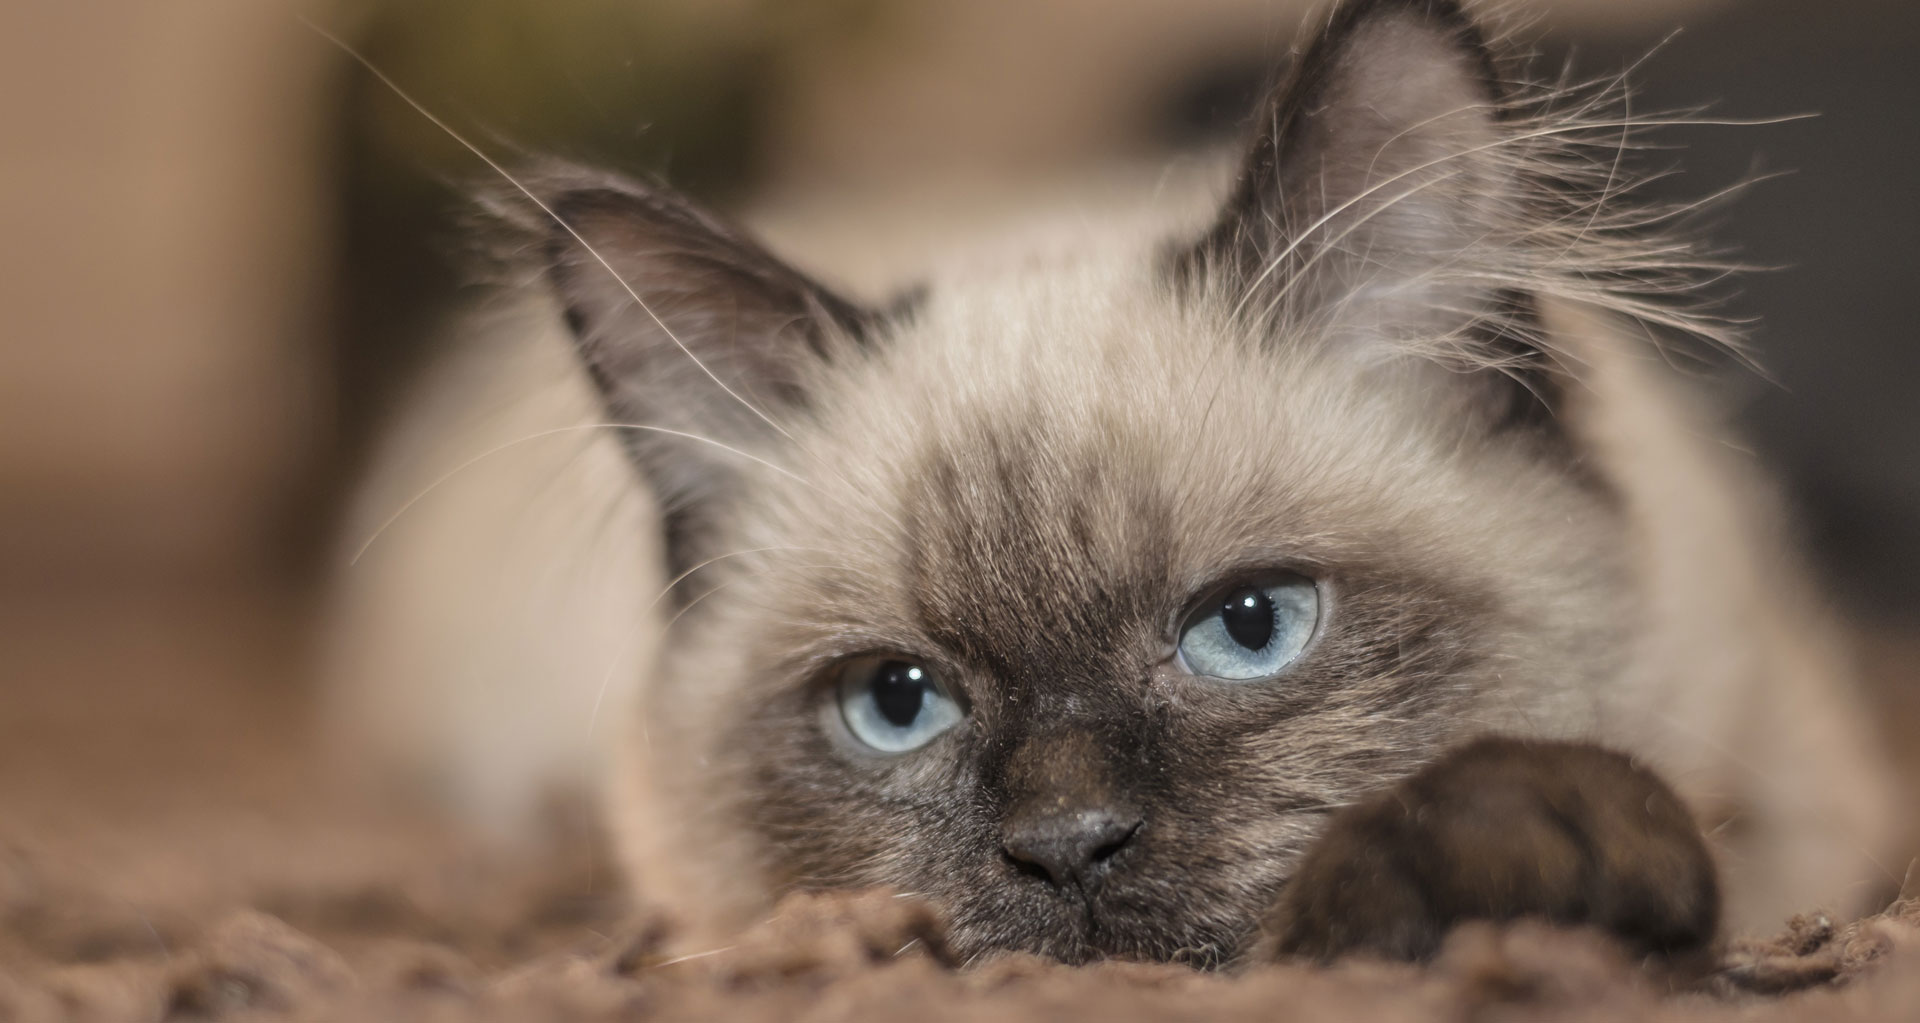 A cat sitting down. They have blue eyes